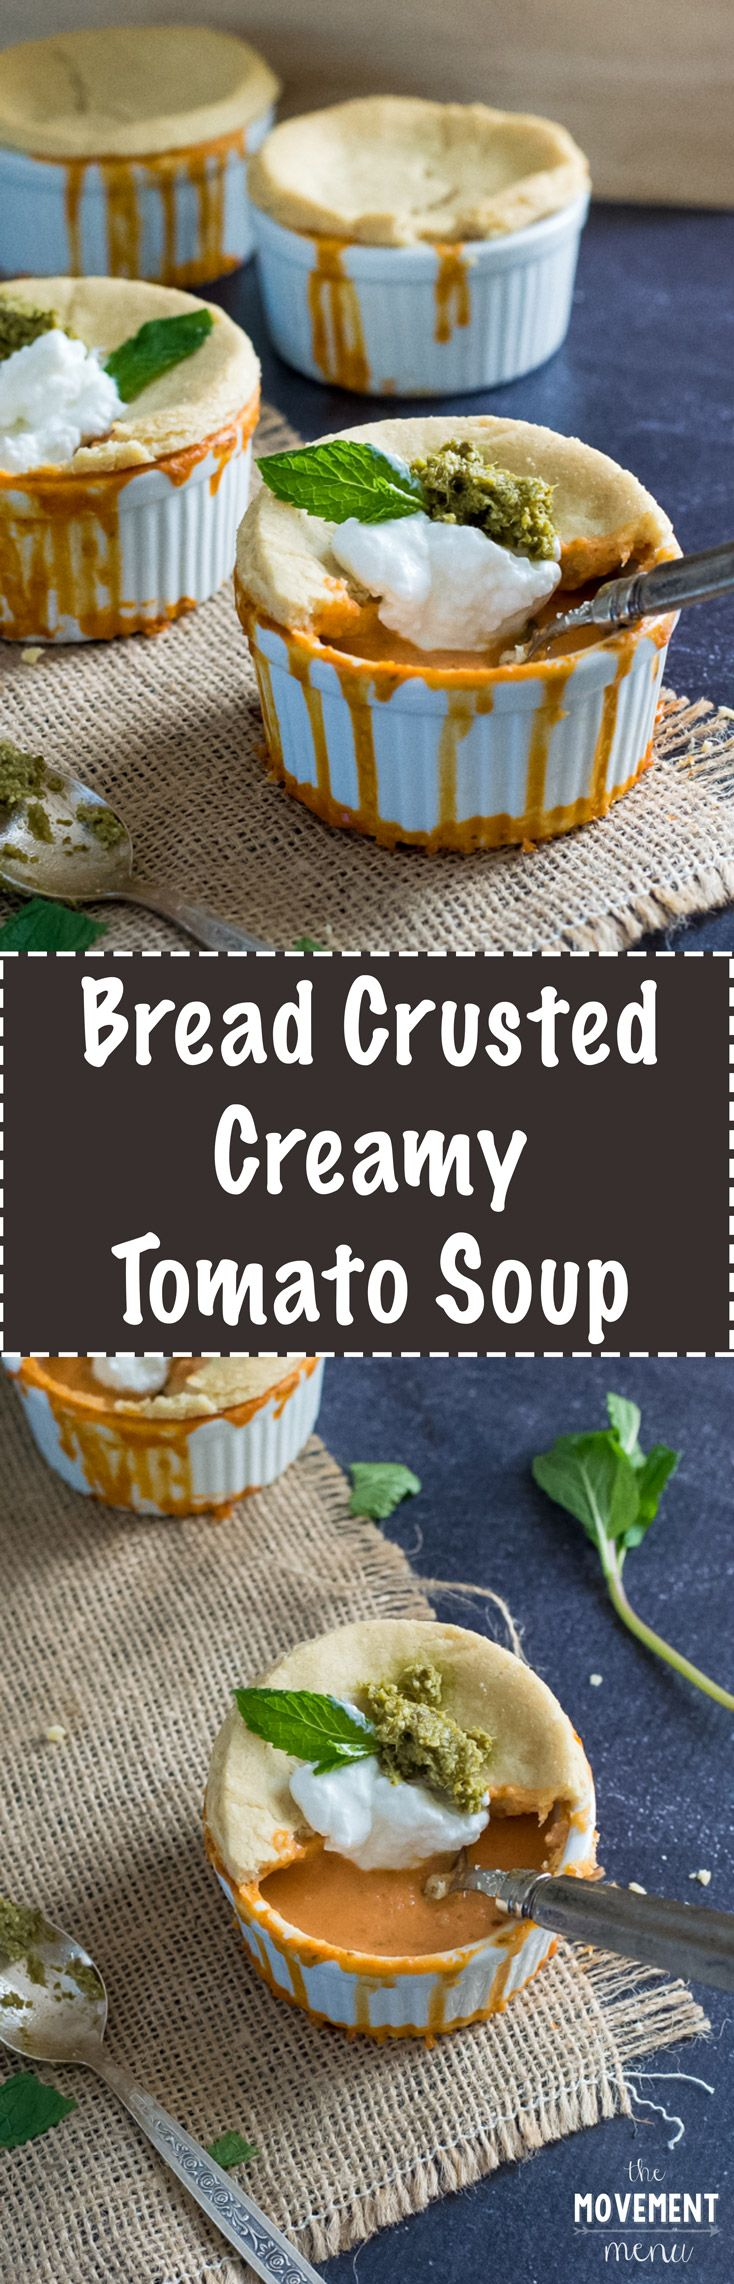 This creamy tomato soup recipe is topped off with a breaded crust and perfect for those chilly evenings, curled up on the couch. The recipe can also be made vegan! TheMovementMenu.com